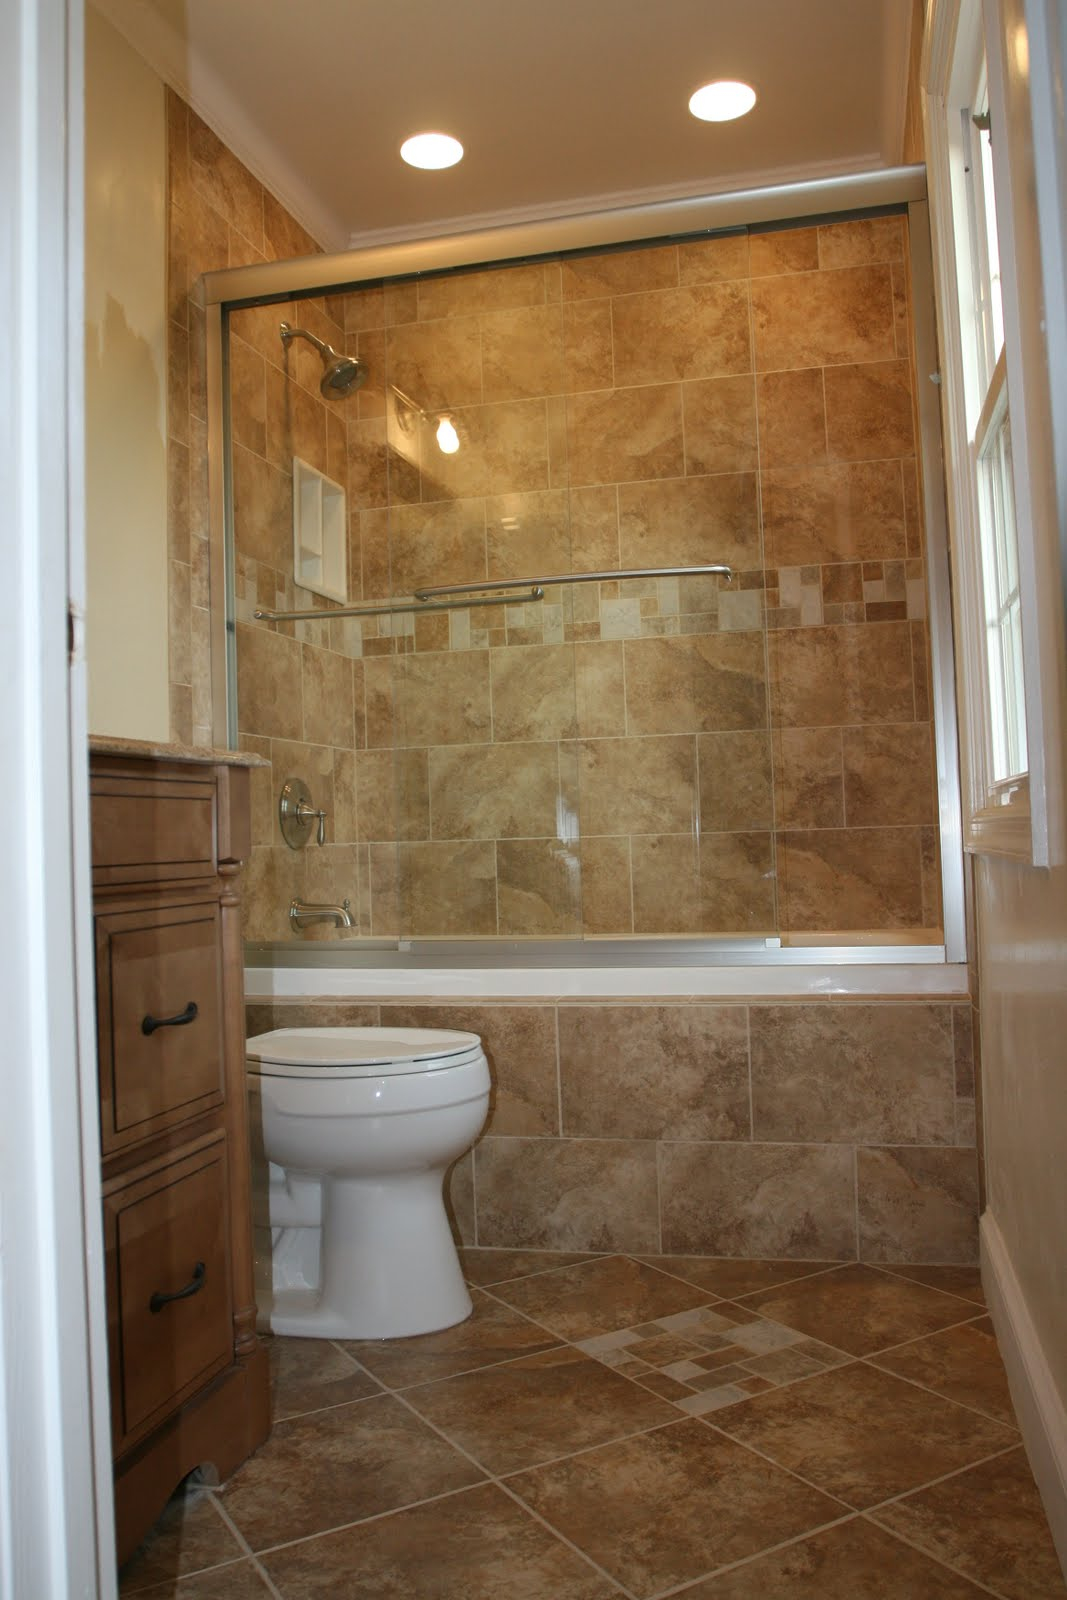 Bathroom remodeling design ideas tile shower niches for Bathroom remodel picture gallery